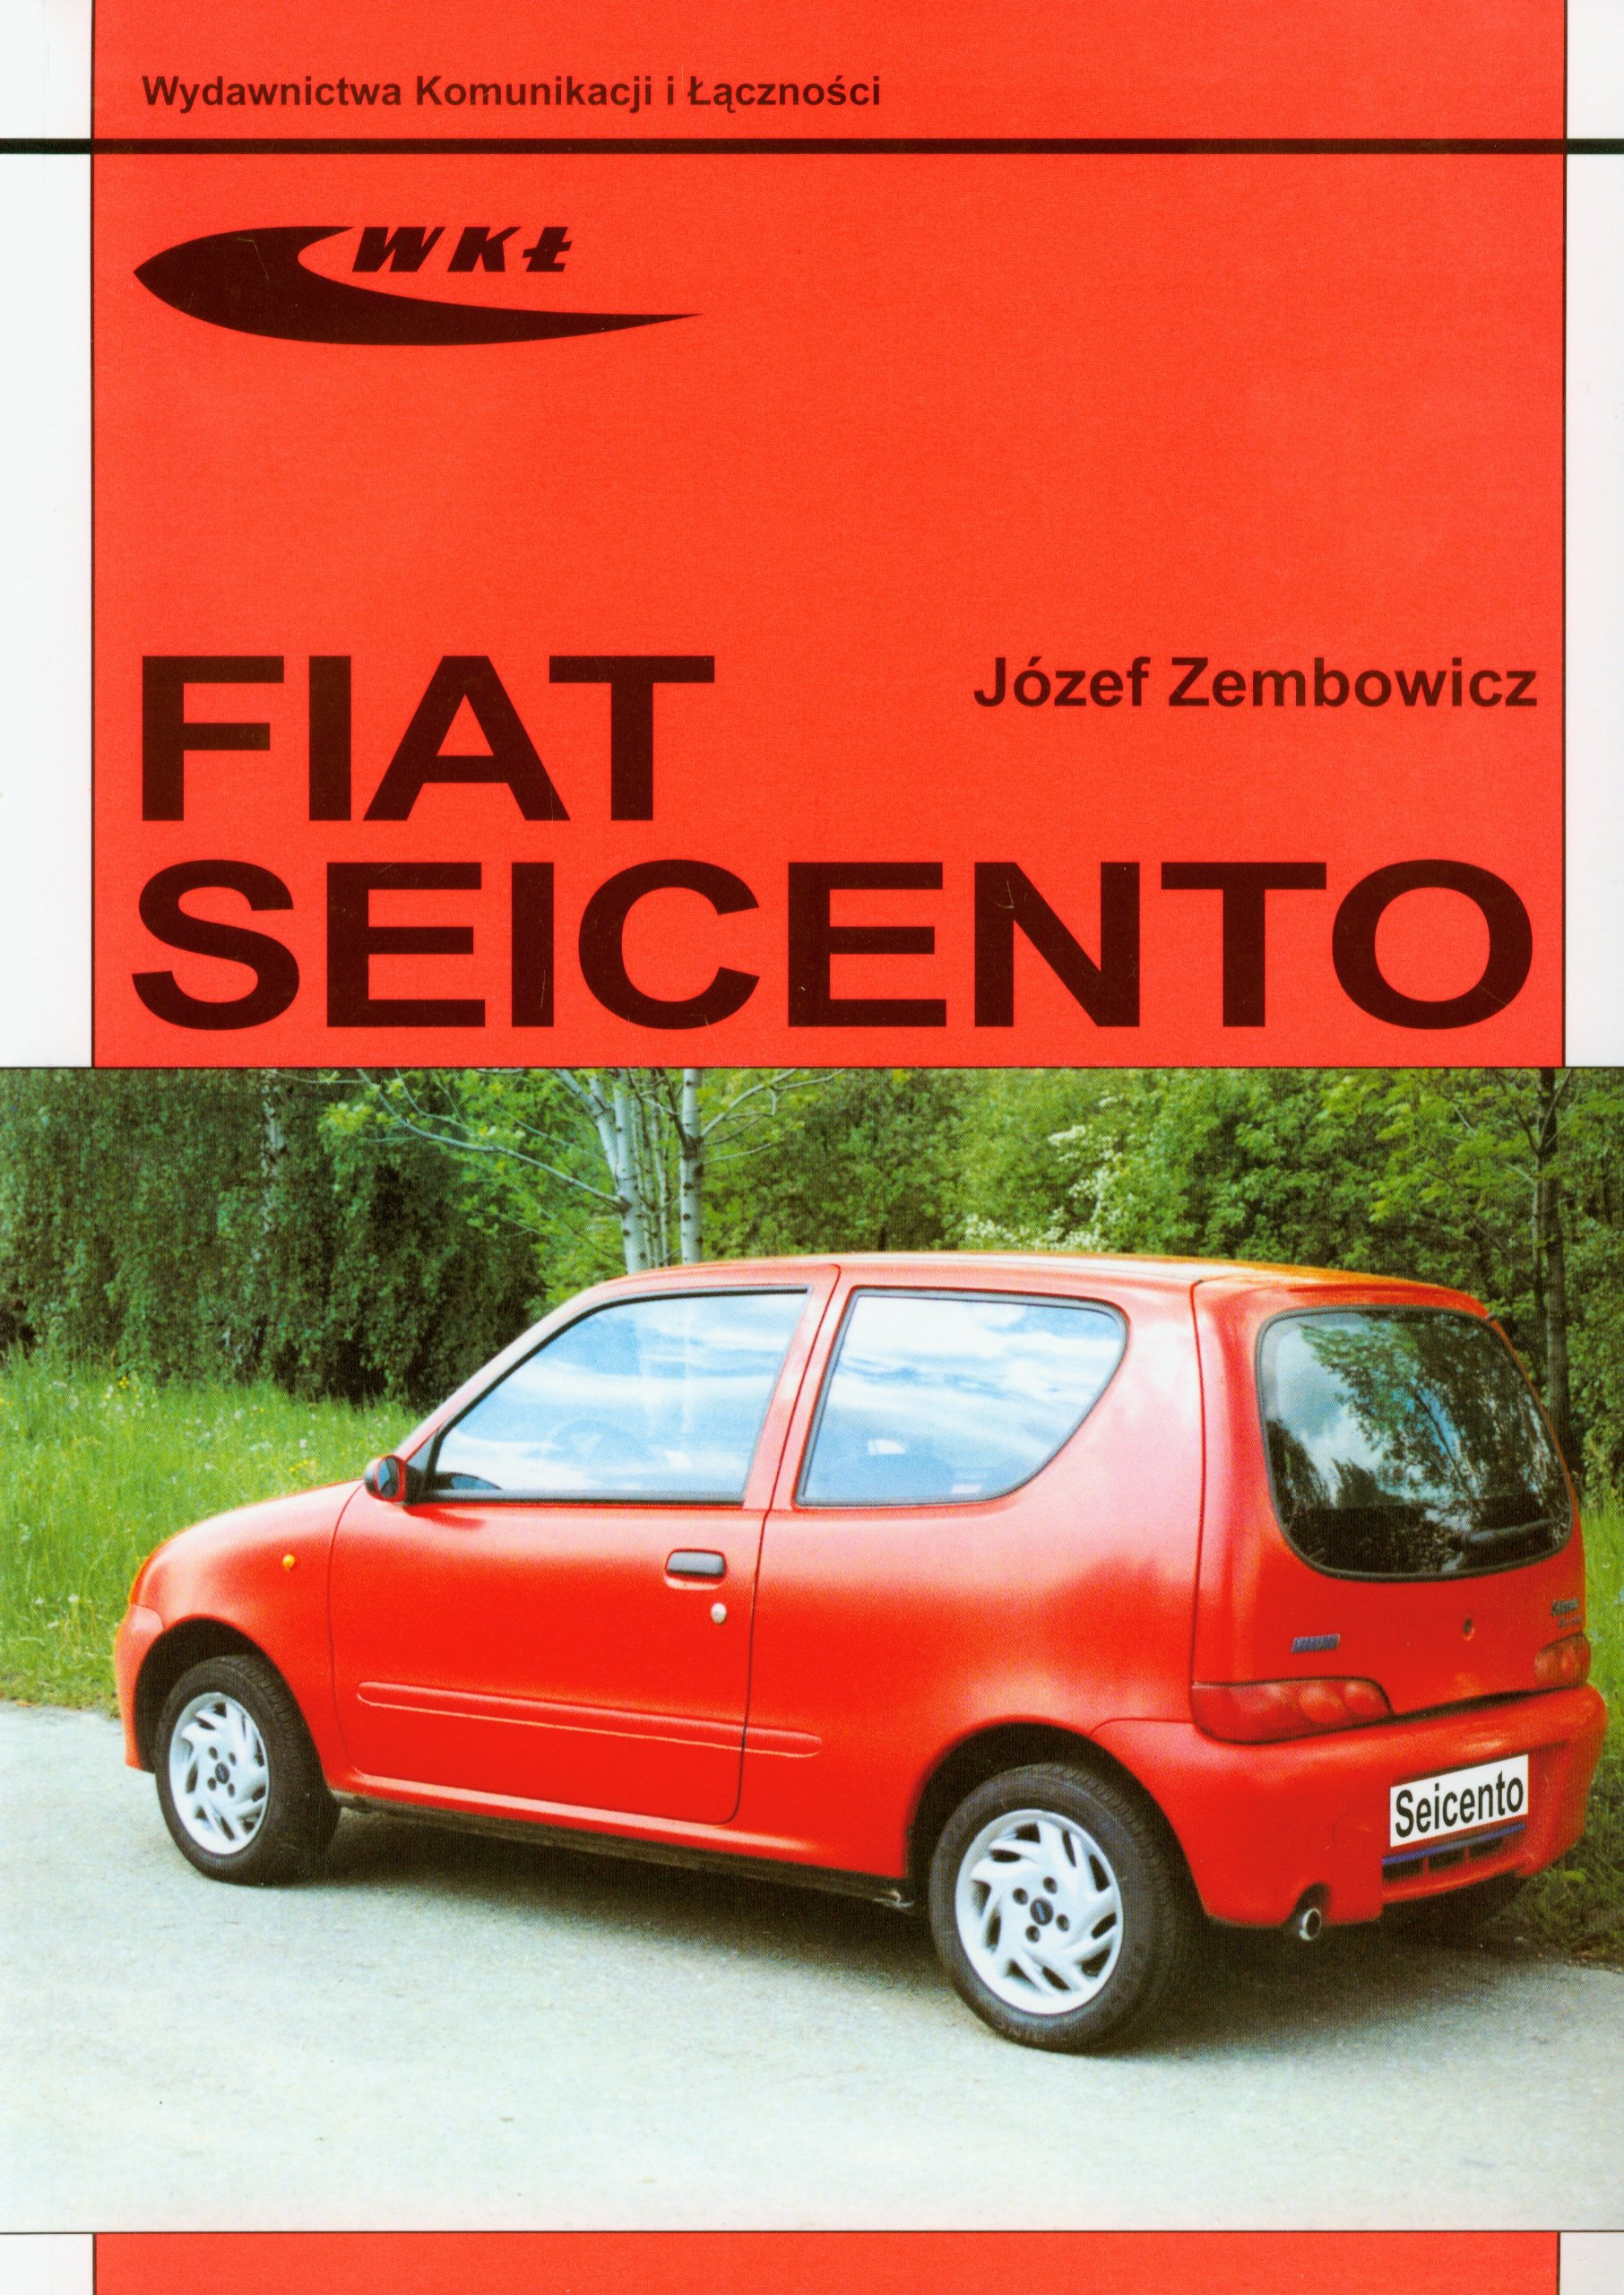 cinquecento on photos reviews photo history better parts seicento fiat ltd